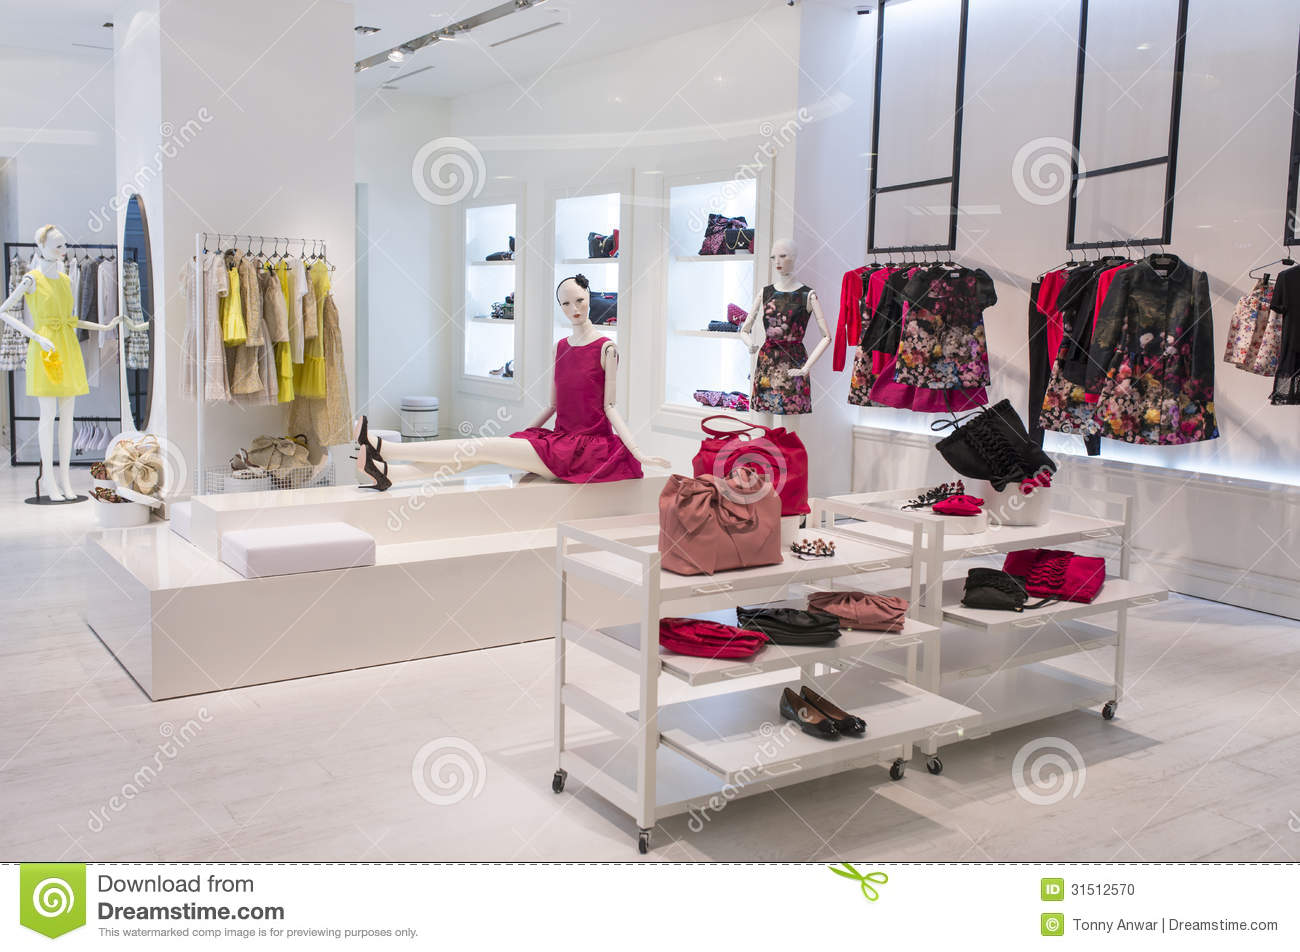 Women Fashion Store Stock Photo Image Of Mannequin Department 31512570